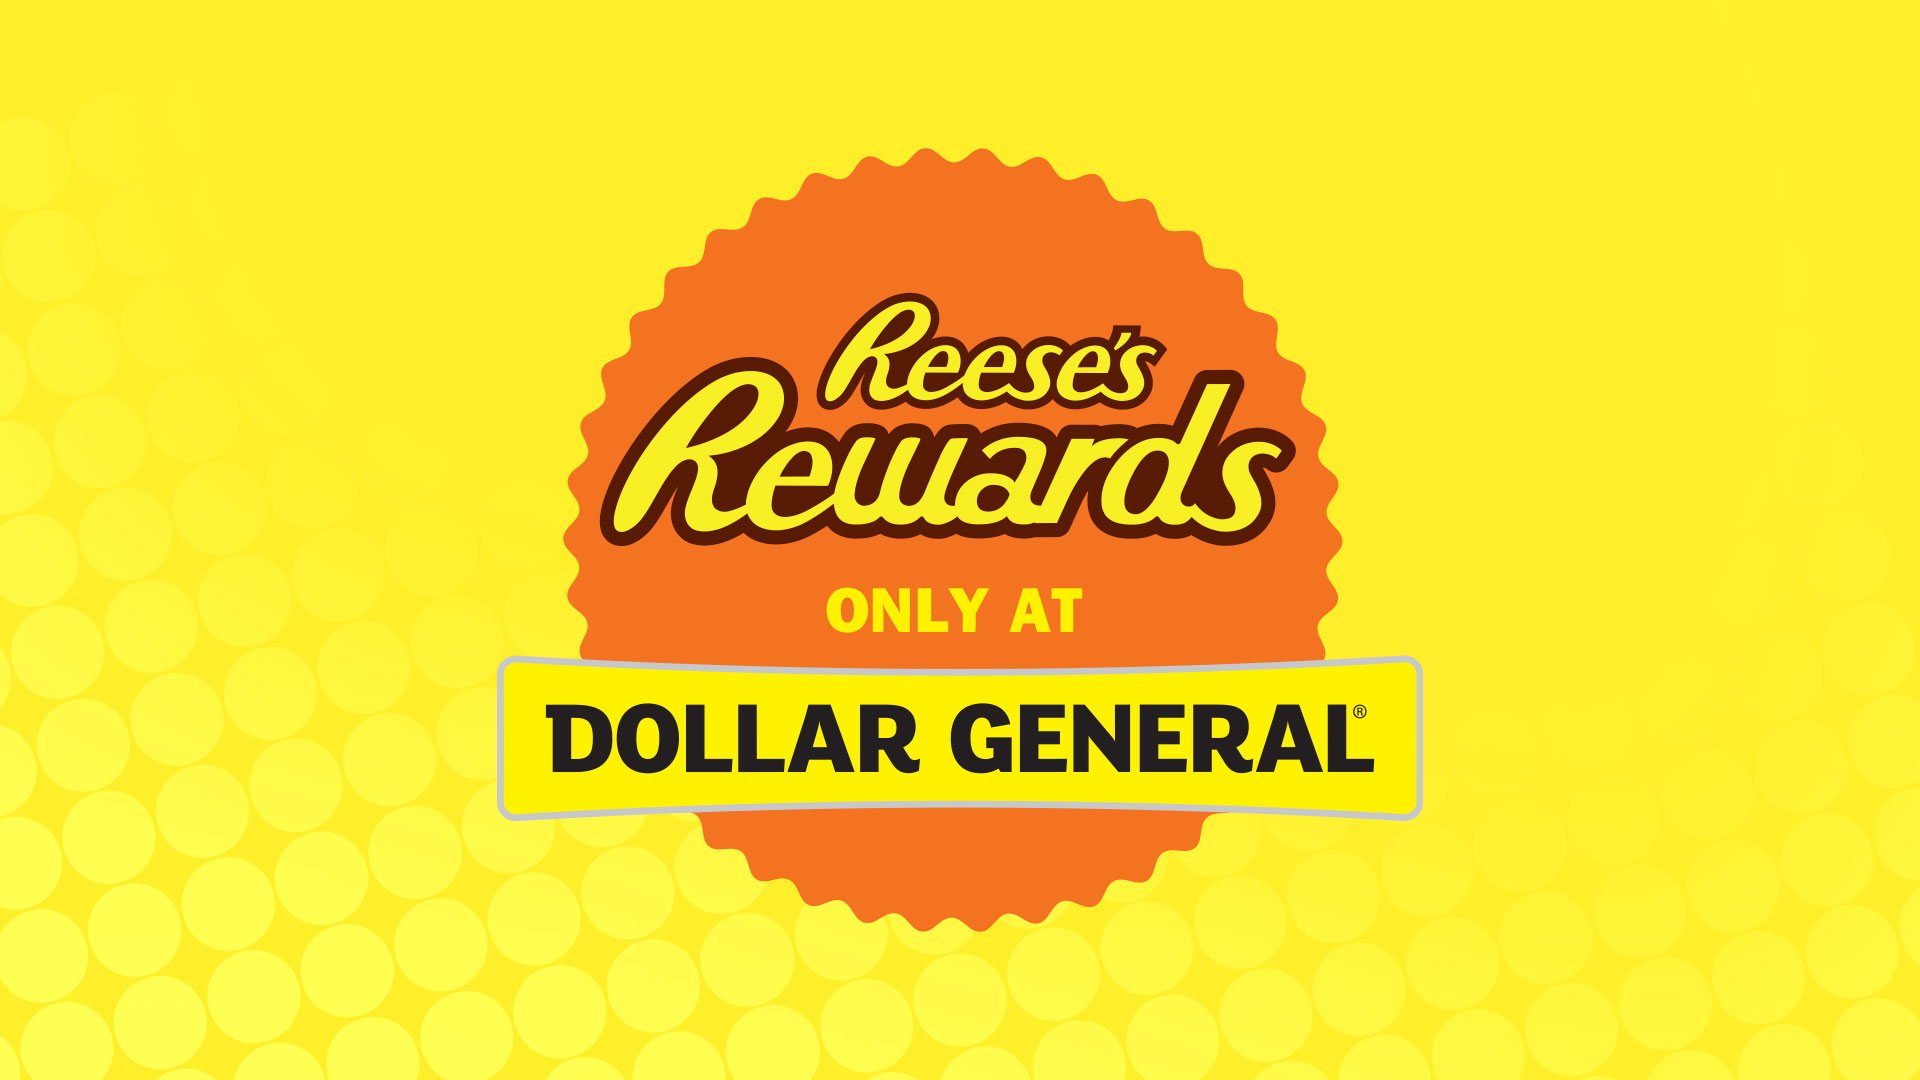 REESE'S Rewards at Dollar General